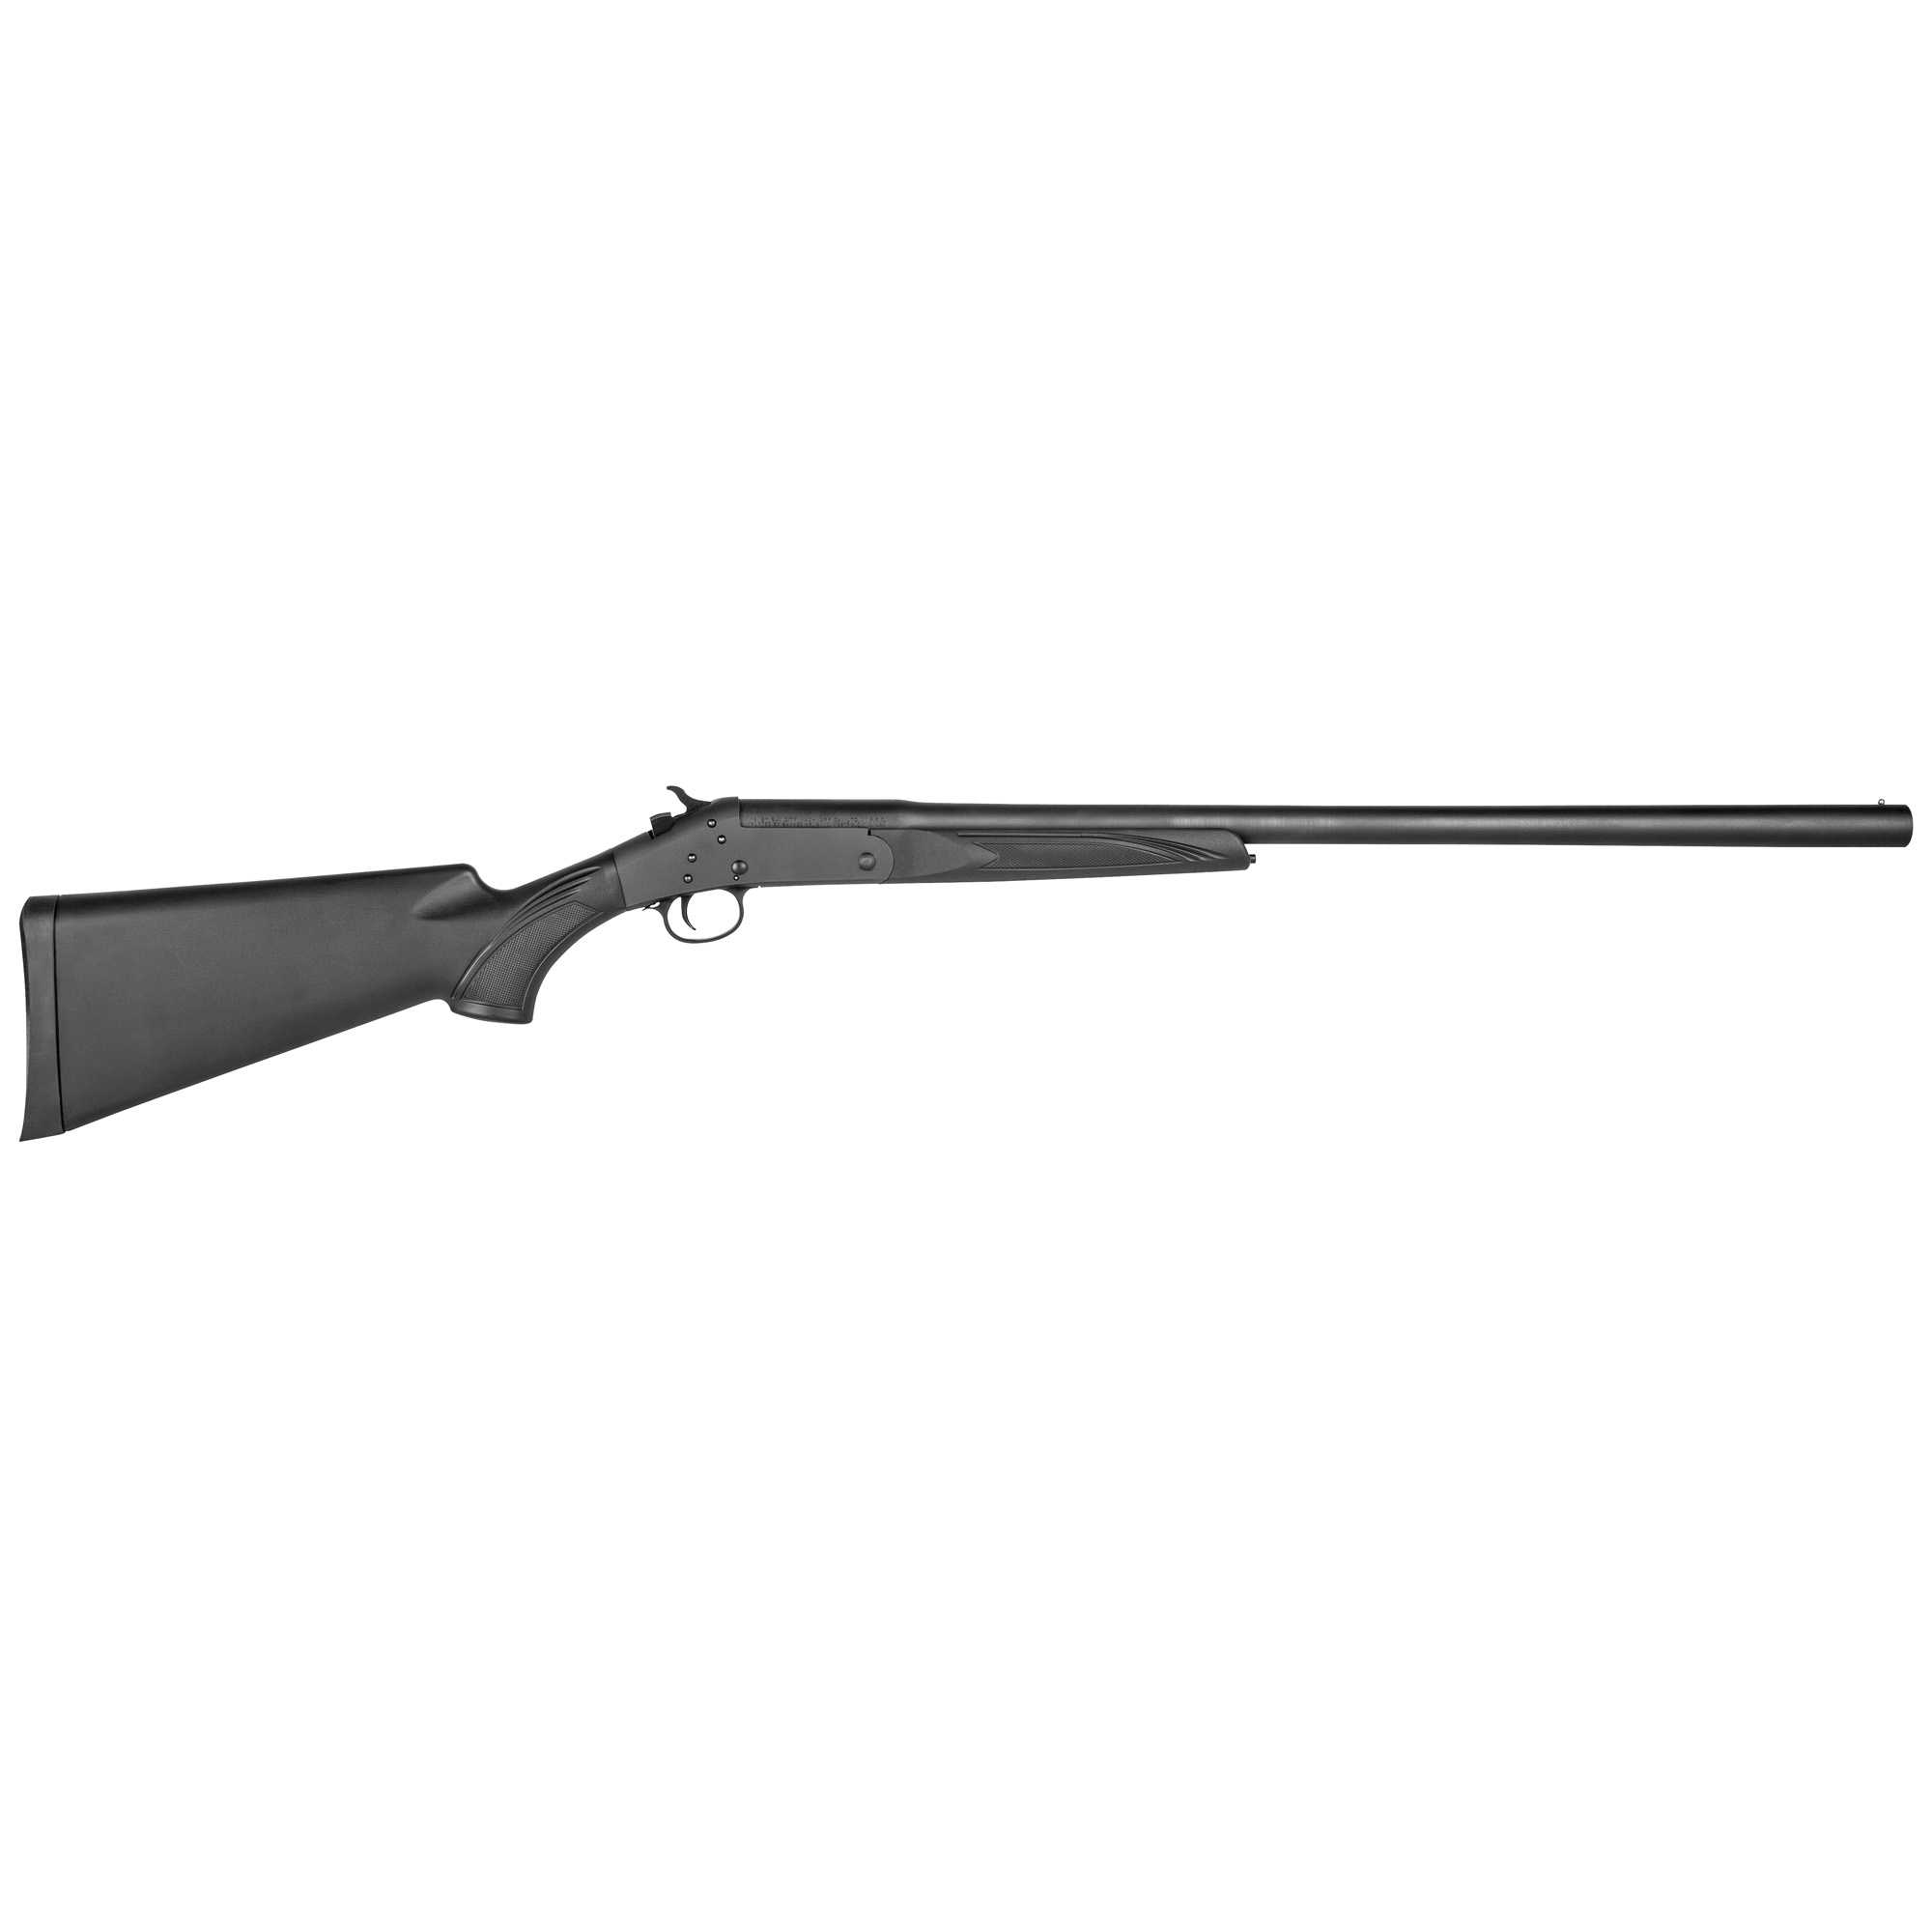 "Single-shot"" break-action shotguns remain popular with practical hunters"" and the Stevens 301 gets even more from the trusted platform. It features a crisp"" reliable break-action and modern synthetic stock that stands up to hard use in the field."